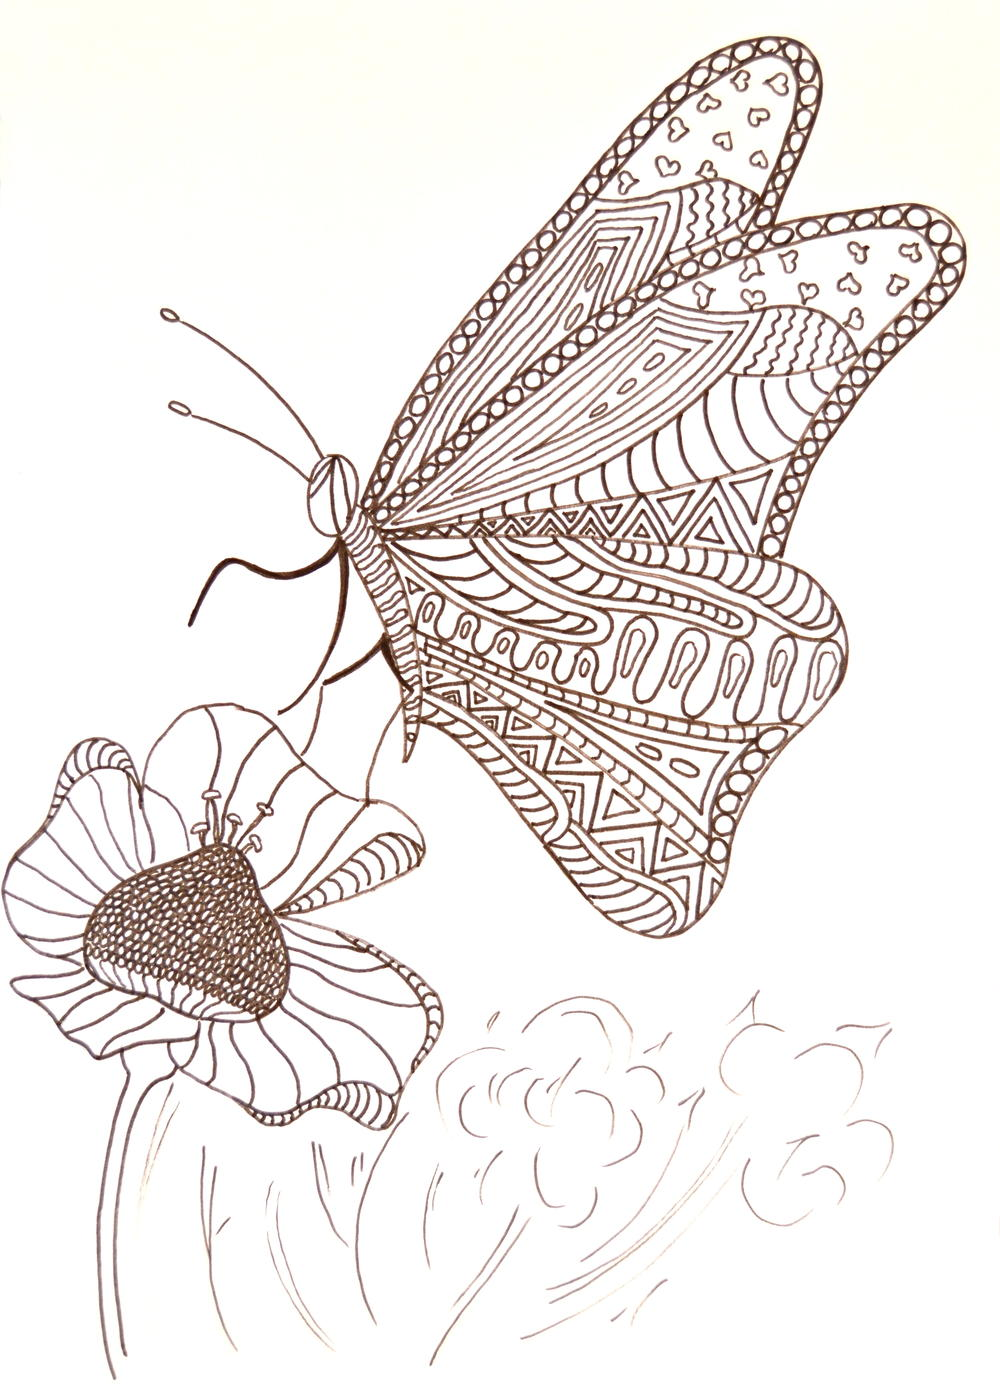 Hungry Butterfly Adult Coloring Page | AllFreePaperCrafts.com